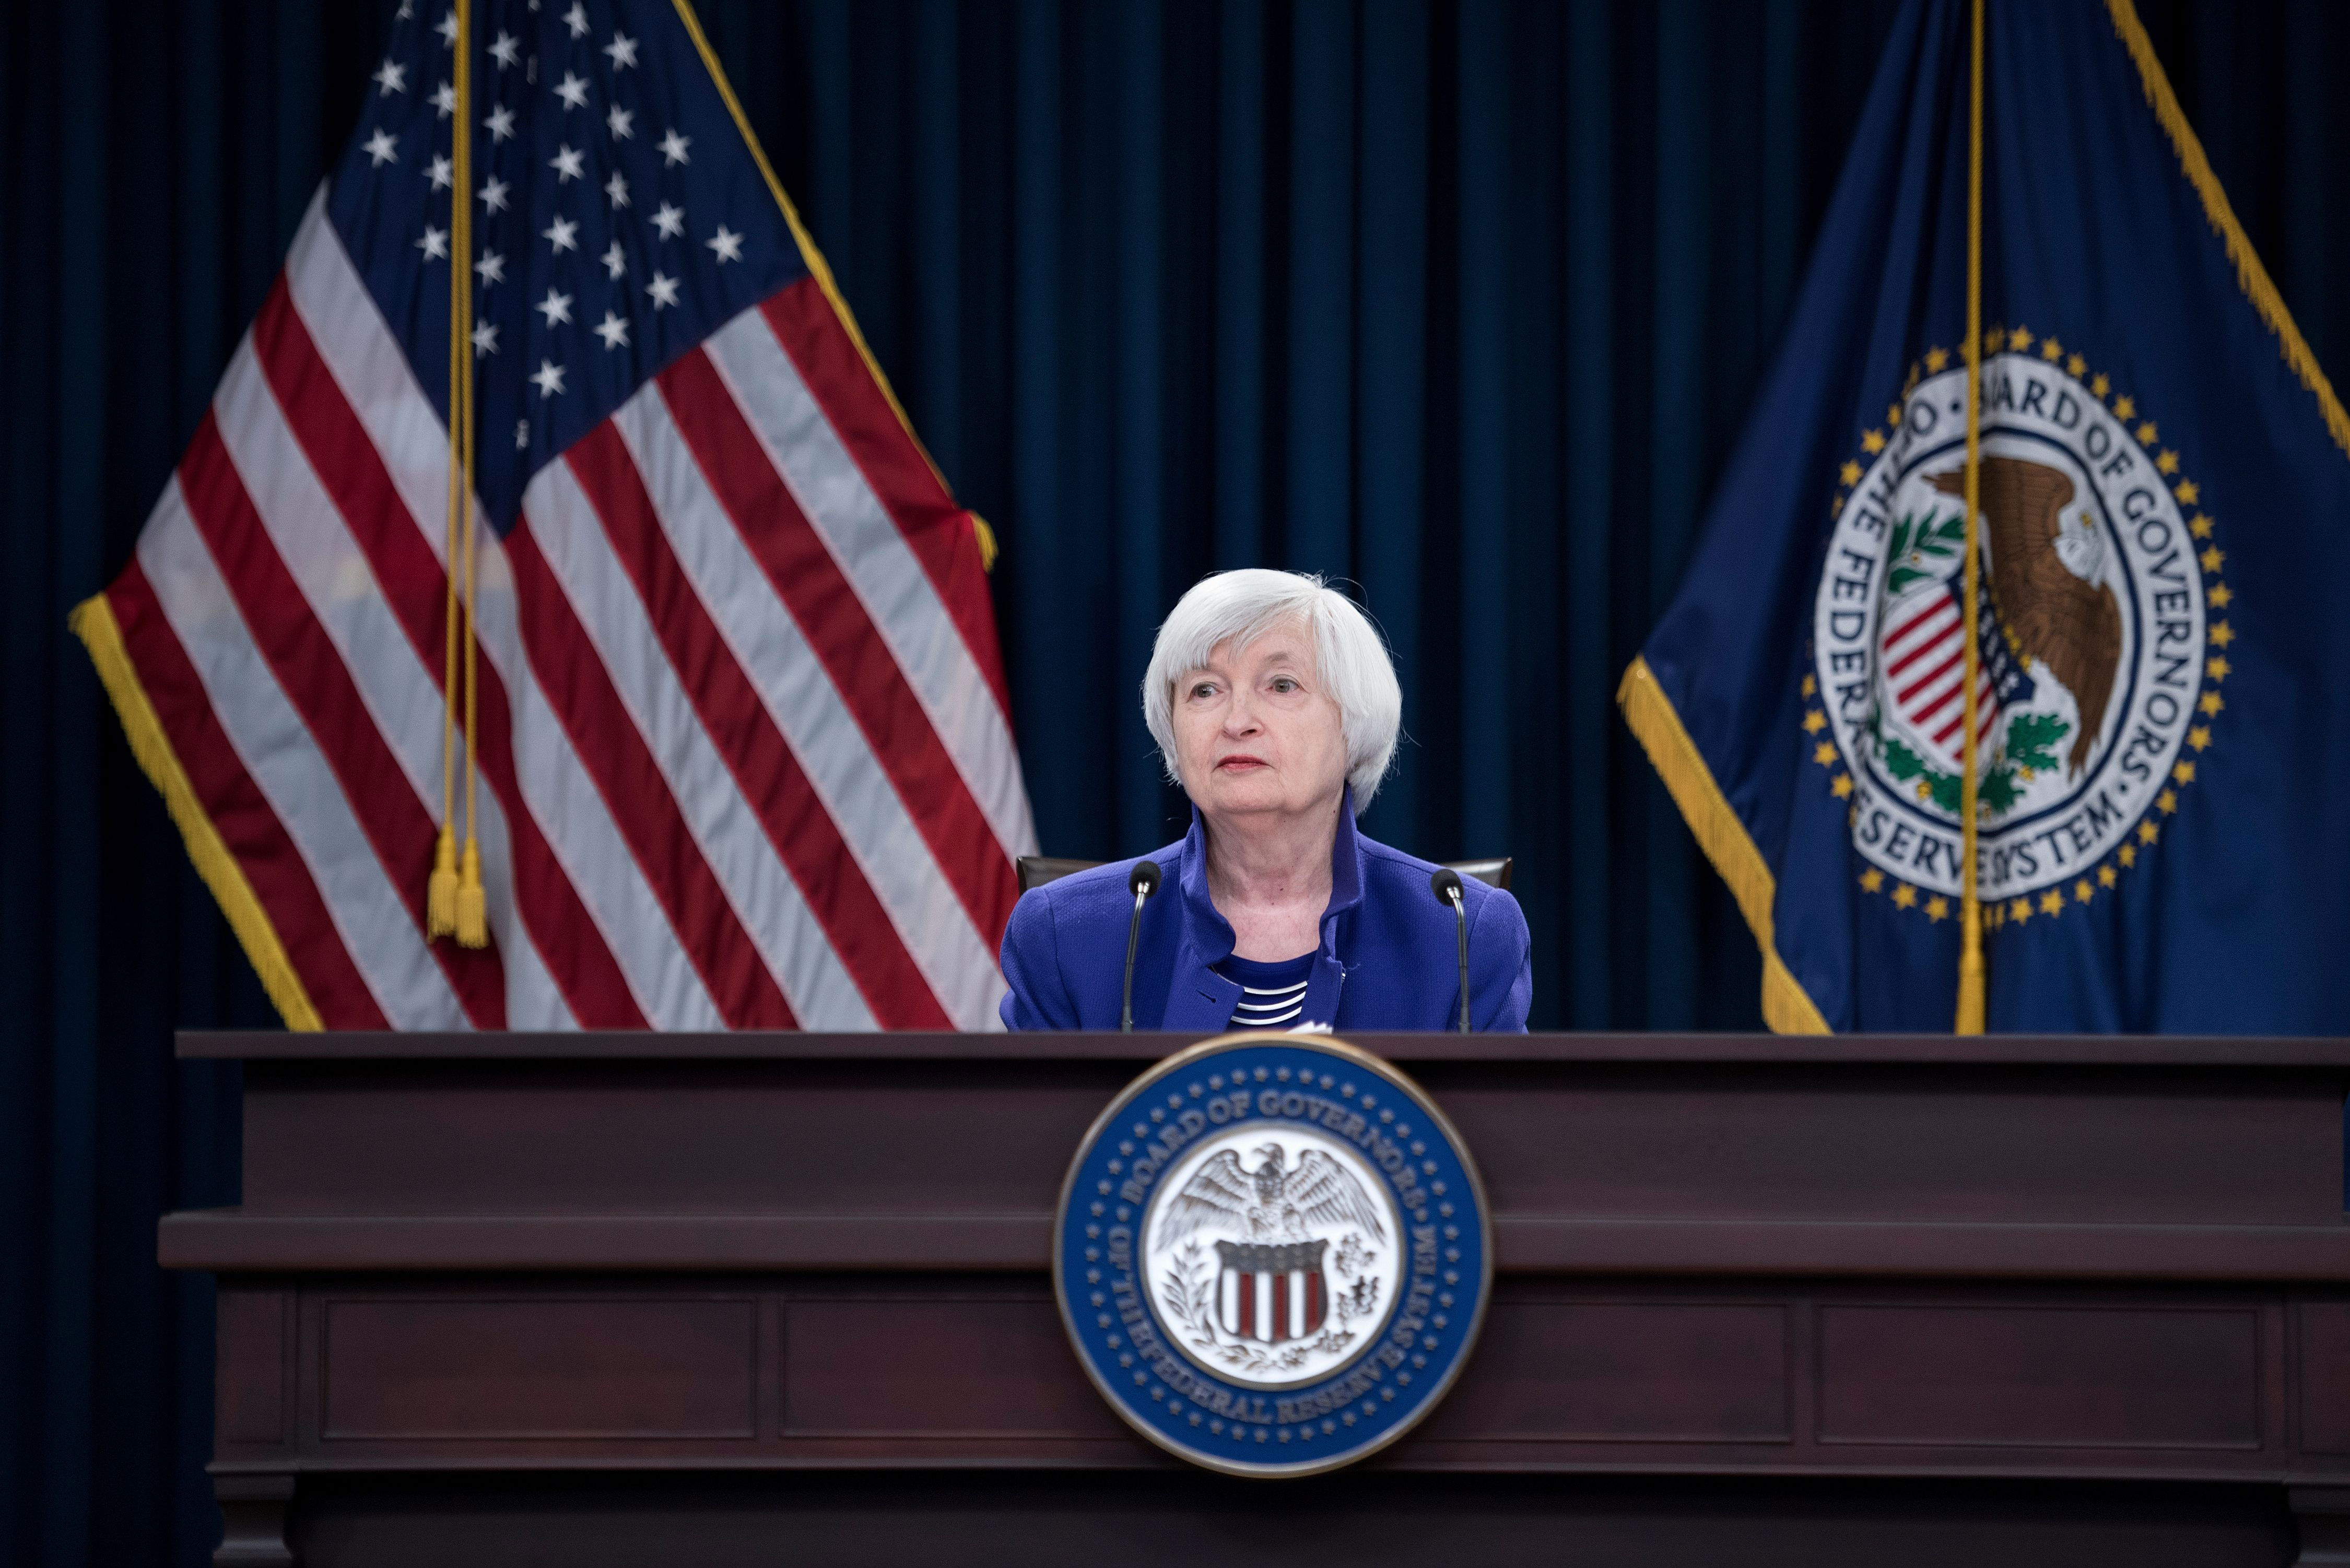 Janet Yellen, then chair of the Federal Reserve, speaks during a briefing in Washington, DC, on December 13, 2017.